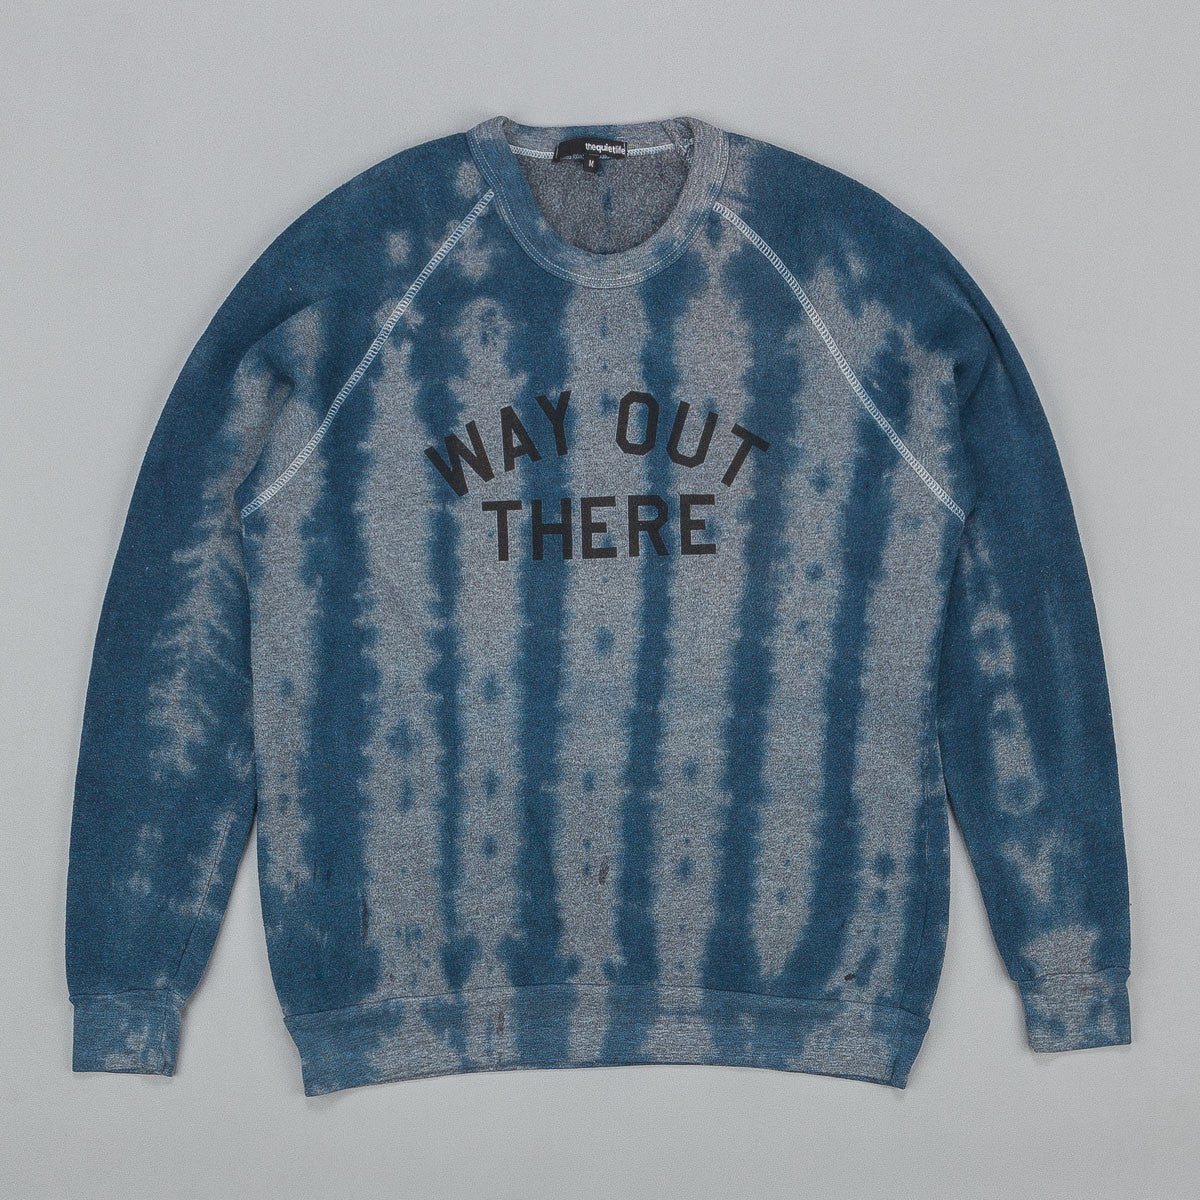 The Quiet Life Way Out there Sweatshirt Tie Dye Heather Grey